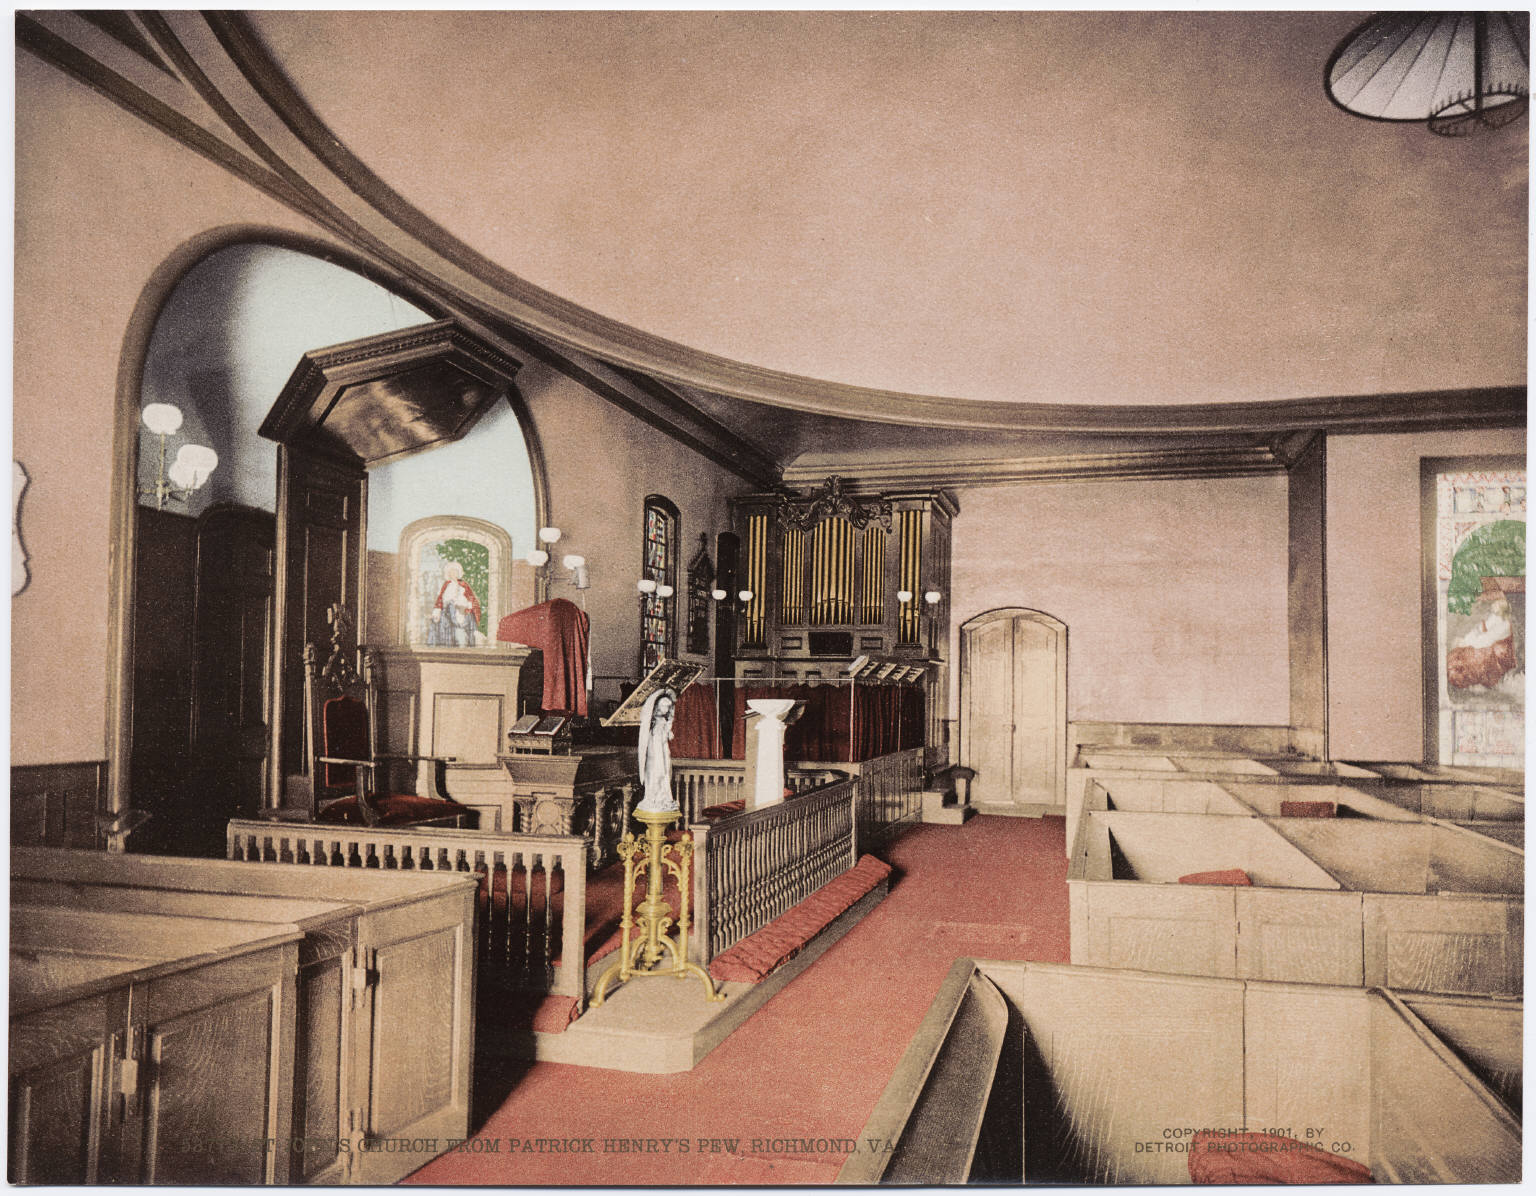 View of St. John's Church in Richmond, Virginia, as seen from Patrick Henry's pew, circa 1901.